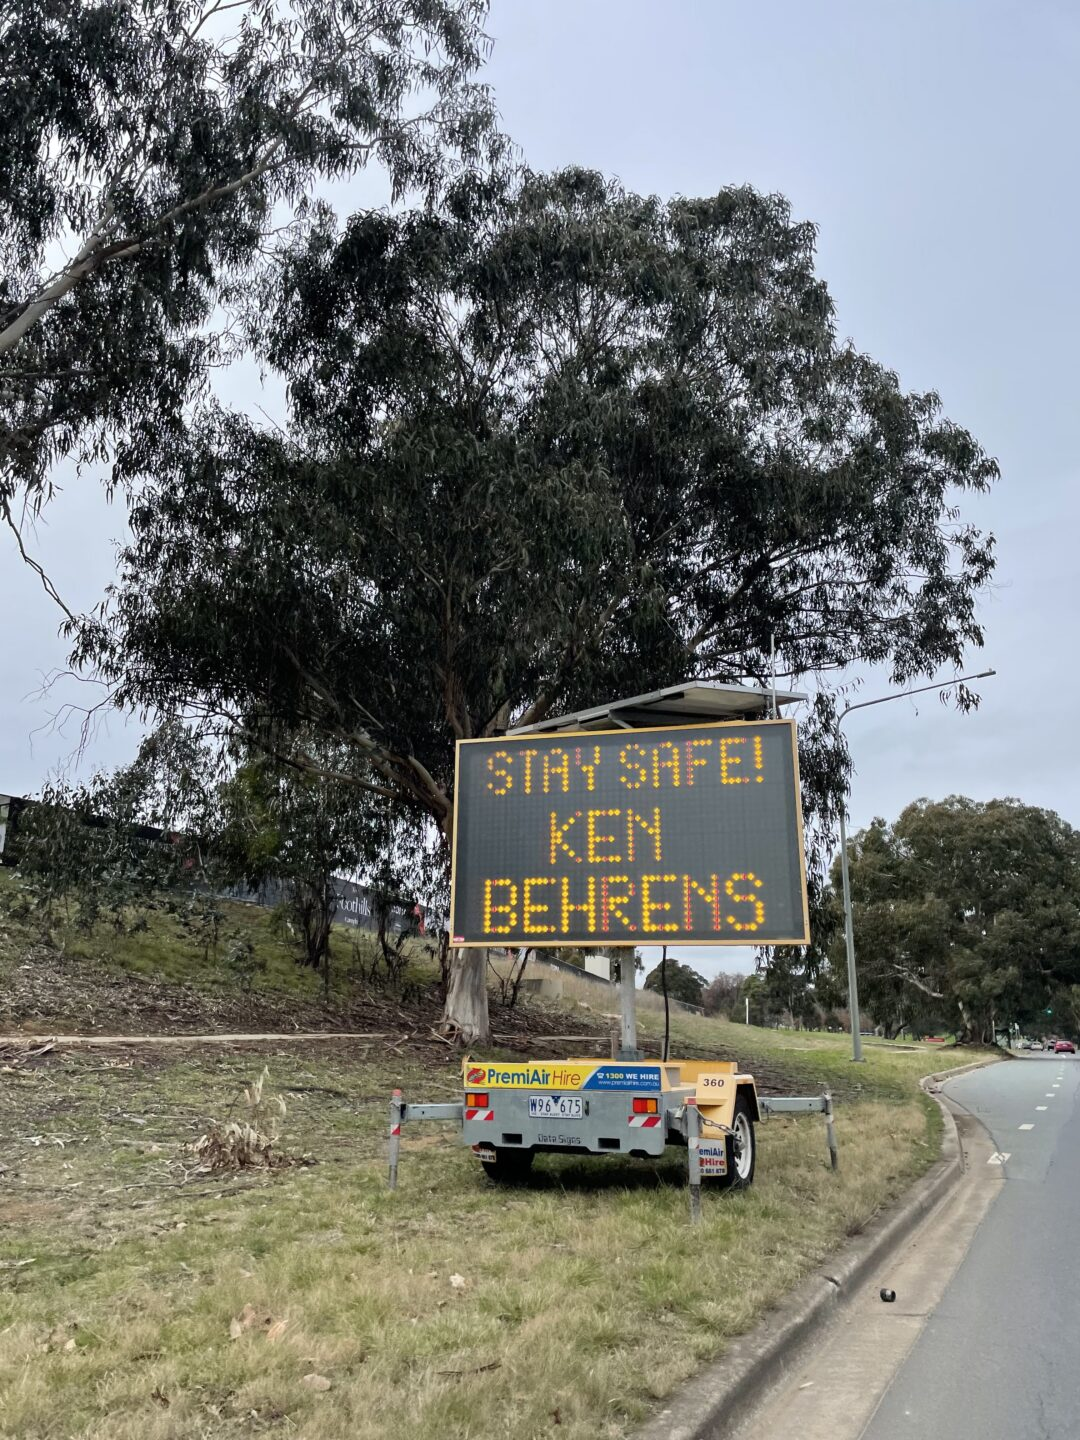 Overcast daytime scene. An electric sign by a road reading STAY SAFE KEN BEHRENS in orange illuminated lettering. Behind the sun is a large eucalyptus tree.